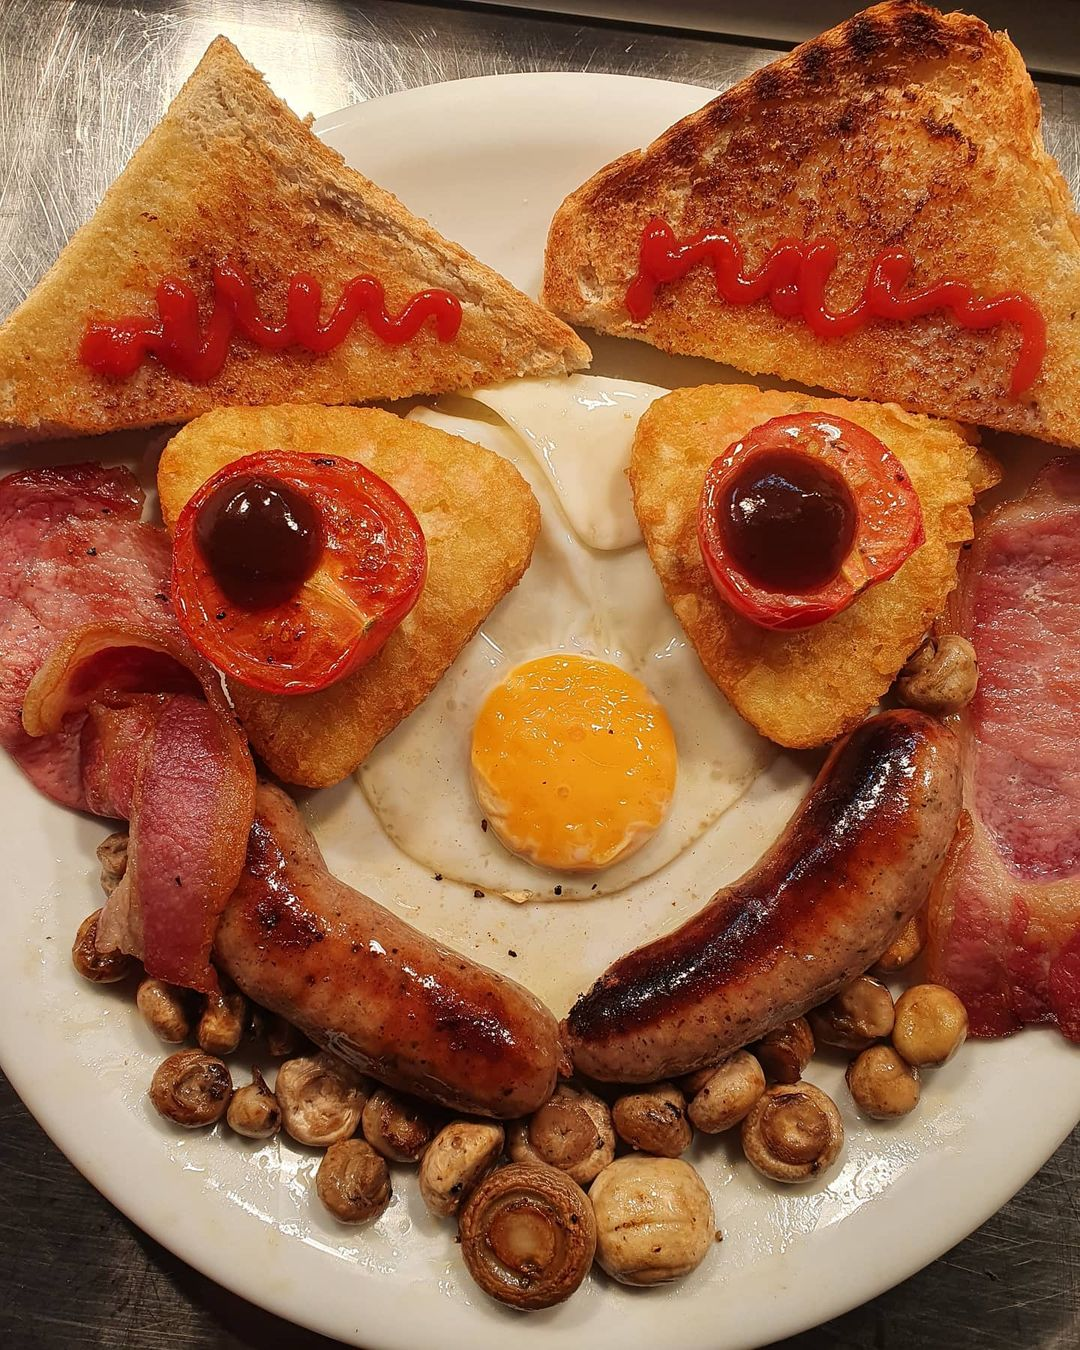 Where to find the best greasy spoon breakfast in Manchester, The Manc